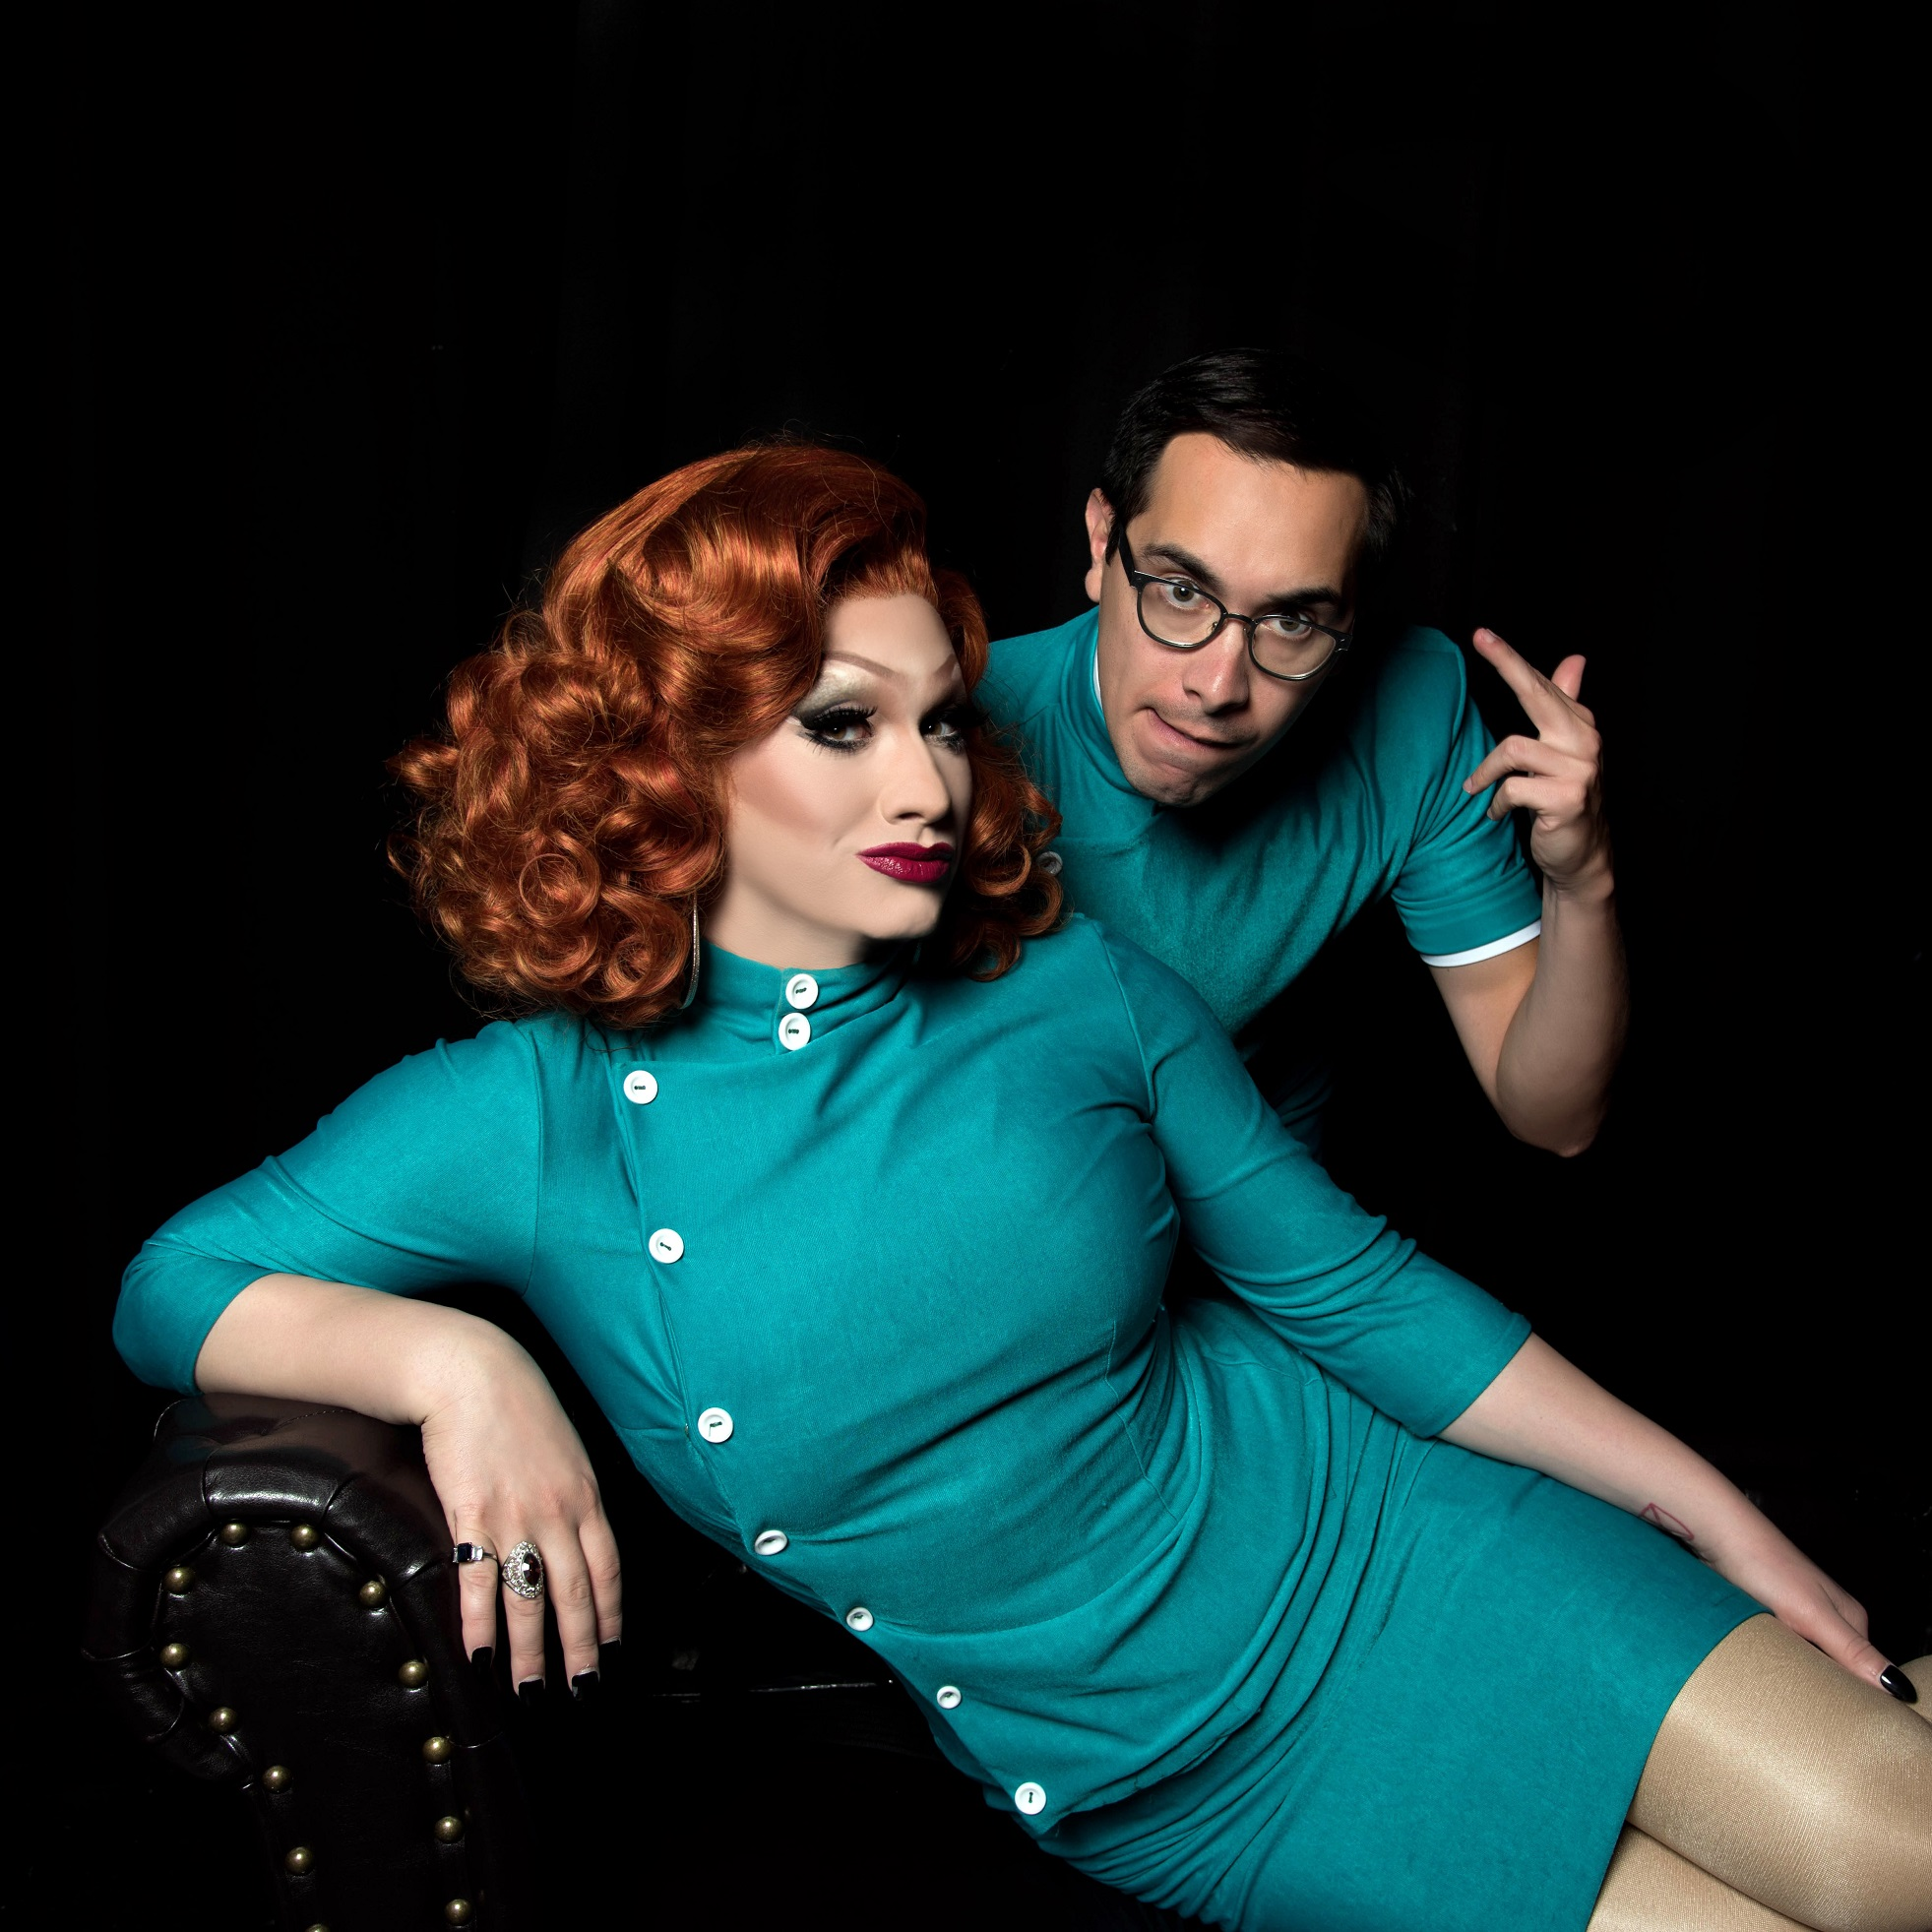 Jinkx Monsoon Amp Major Scales The Ginger Snapped Komedia